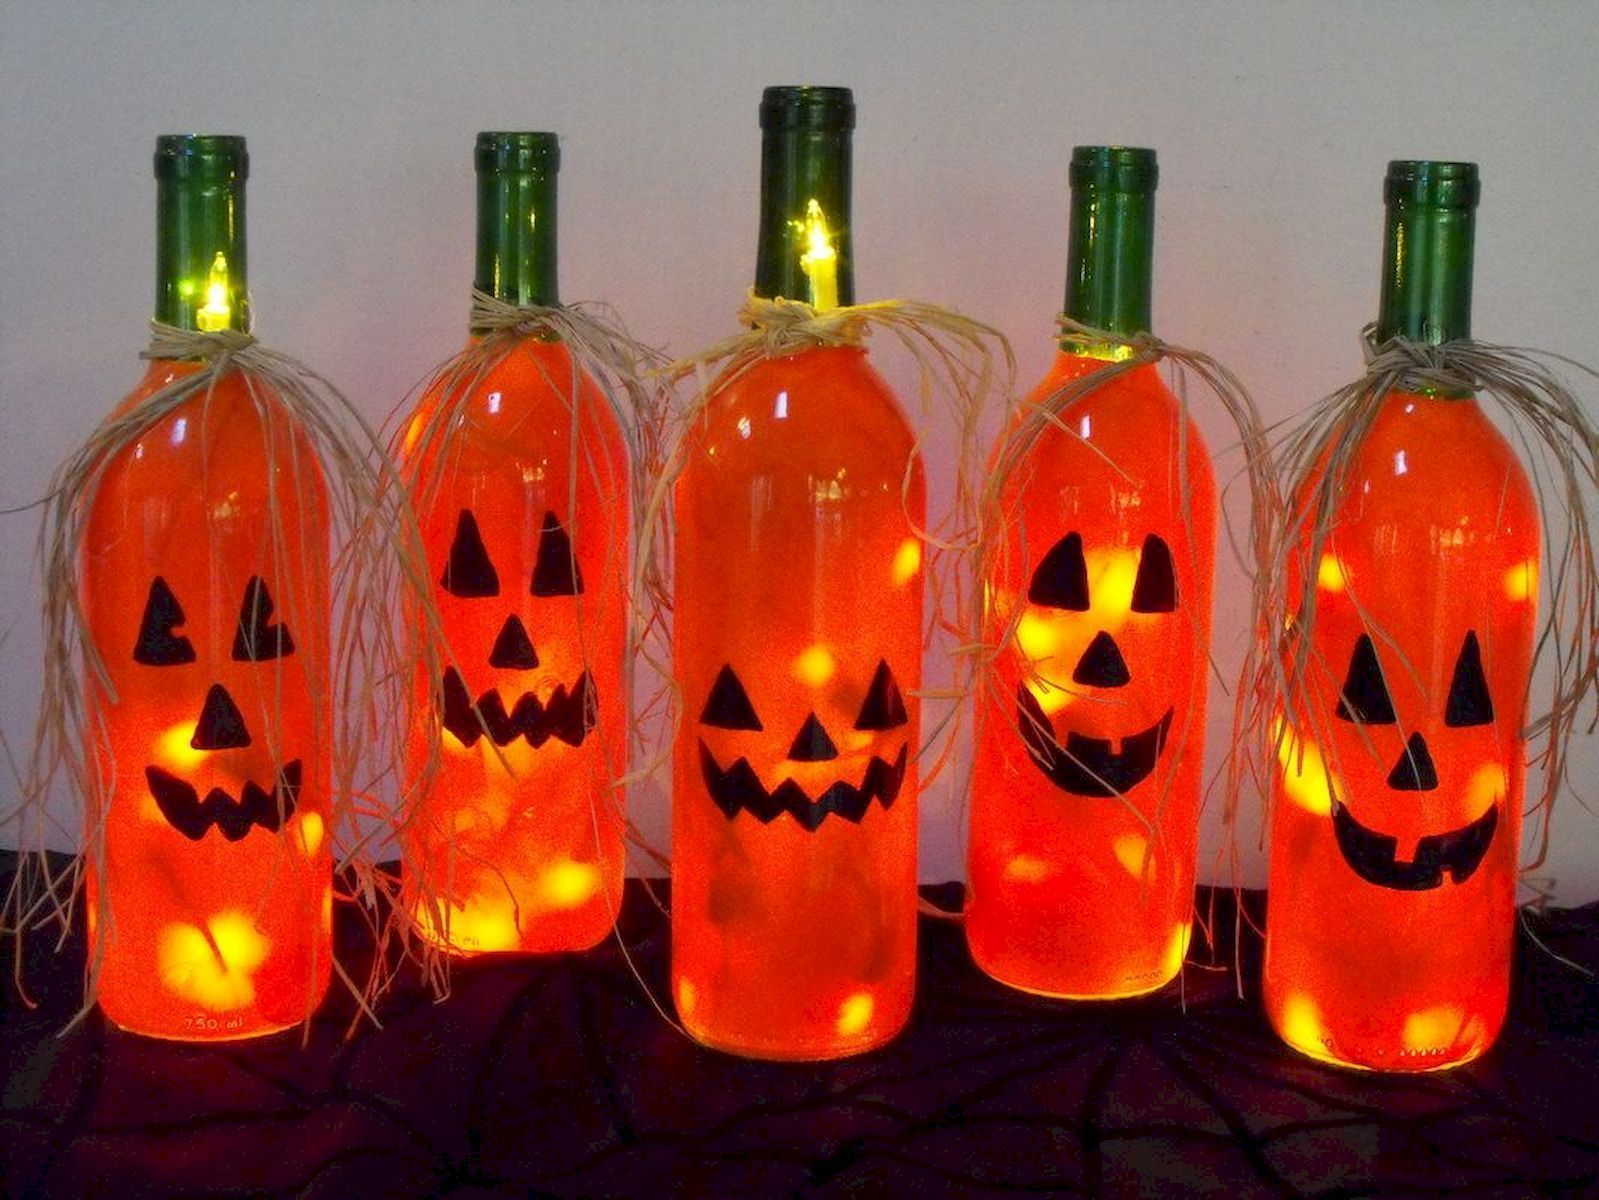 Creative Ways To Use Wine Bottles As Halloween Decorbe Creative And Decorate Your House Or Porch W Halloween Wine Bottles Christmas Wine Bottles Halloween Wine